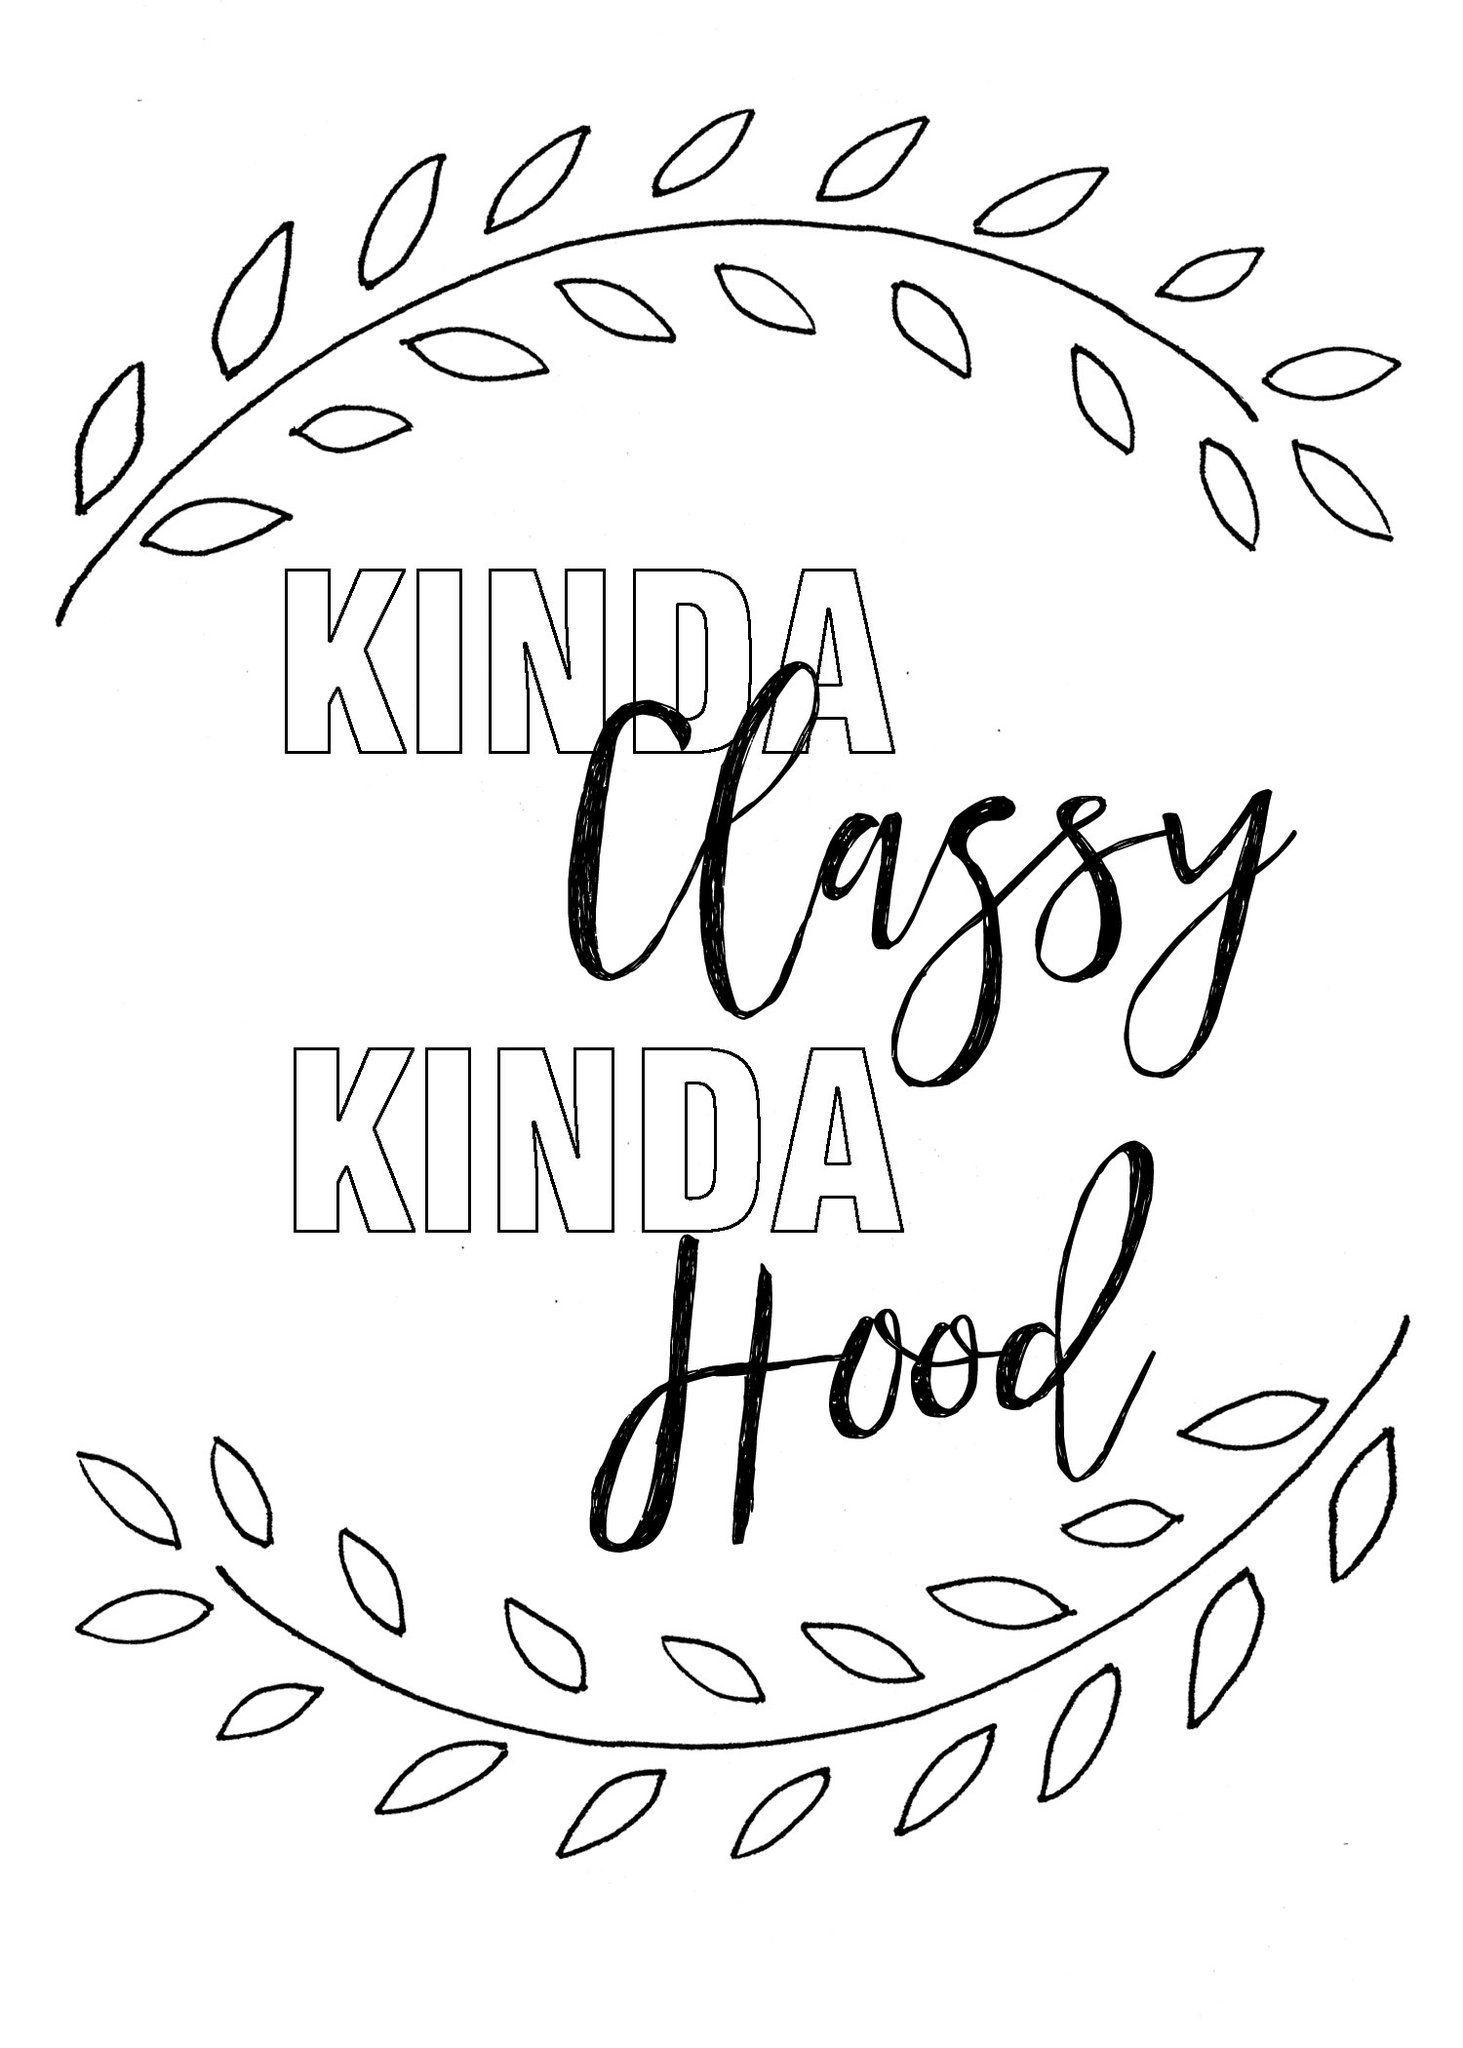 Printable Coloring Card Download Wall Art Kinda Classy Kinda